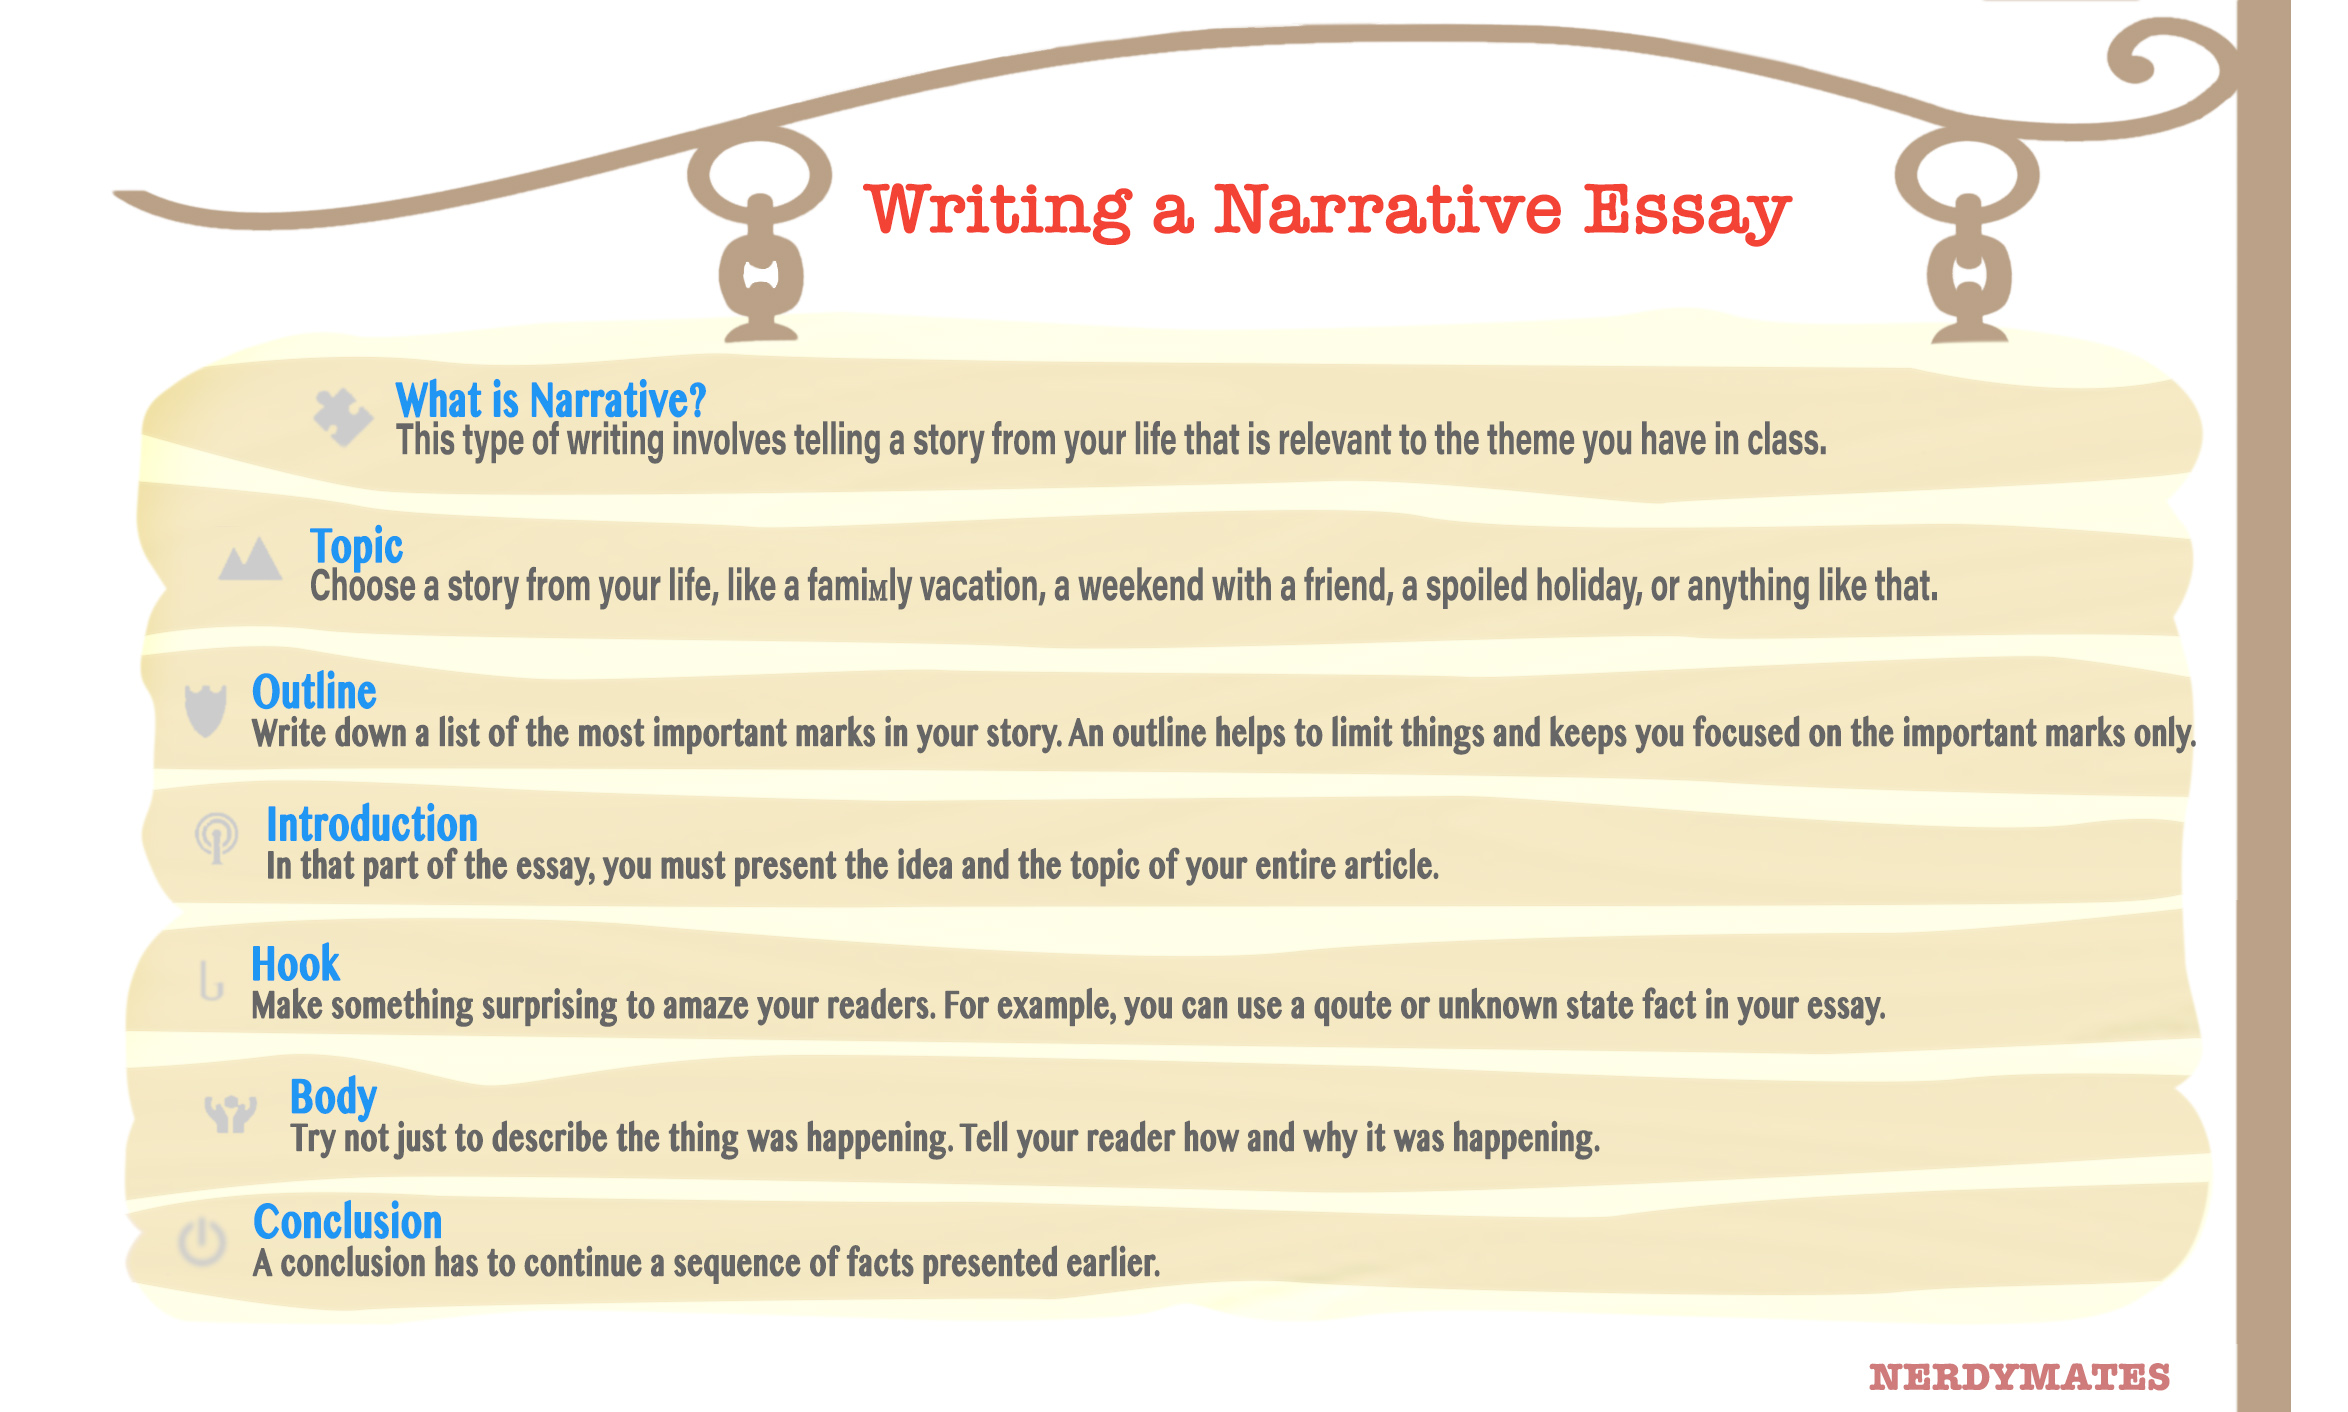 narrative essay on life lesson Narrative essay topics narrative essays are, by definition, personal to you  and describe how you use those lessons in your everyday life with this help, you should be able to write an excellent narrative essay tell the story, but focus on what came of the events in question.